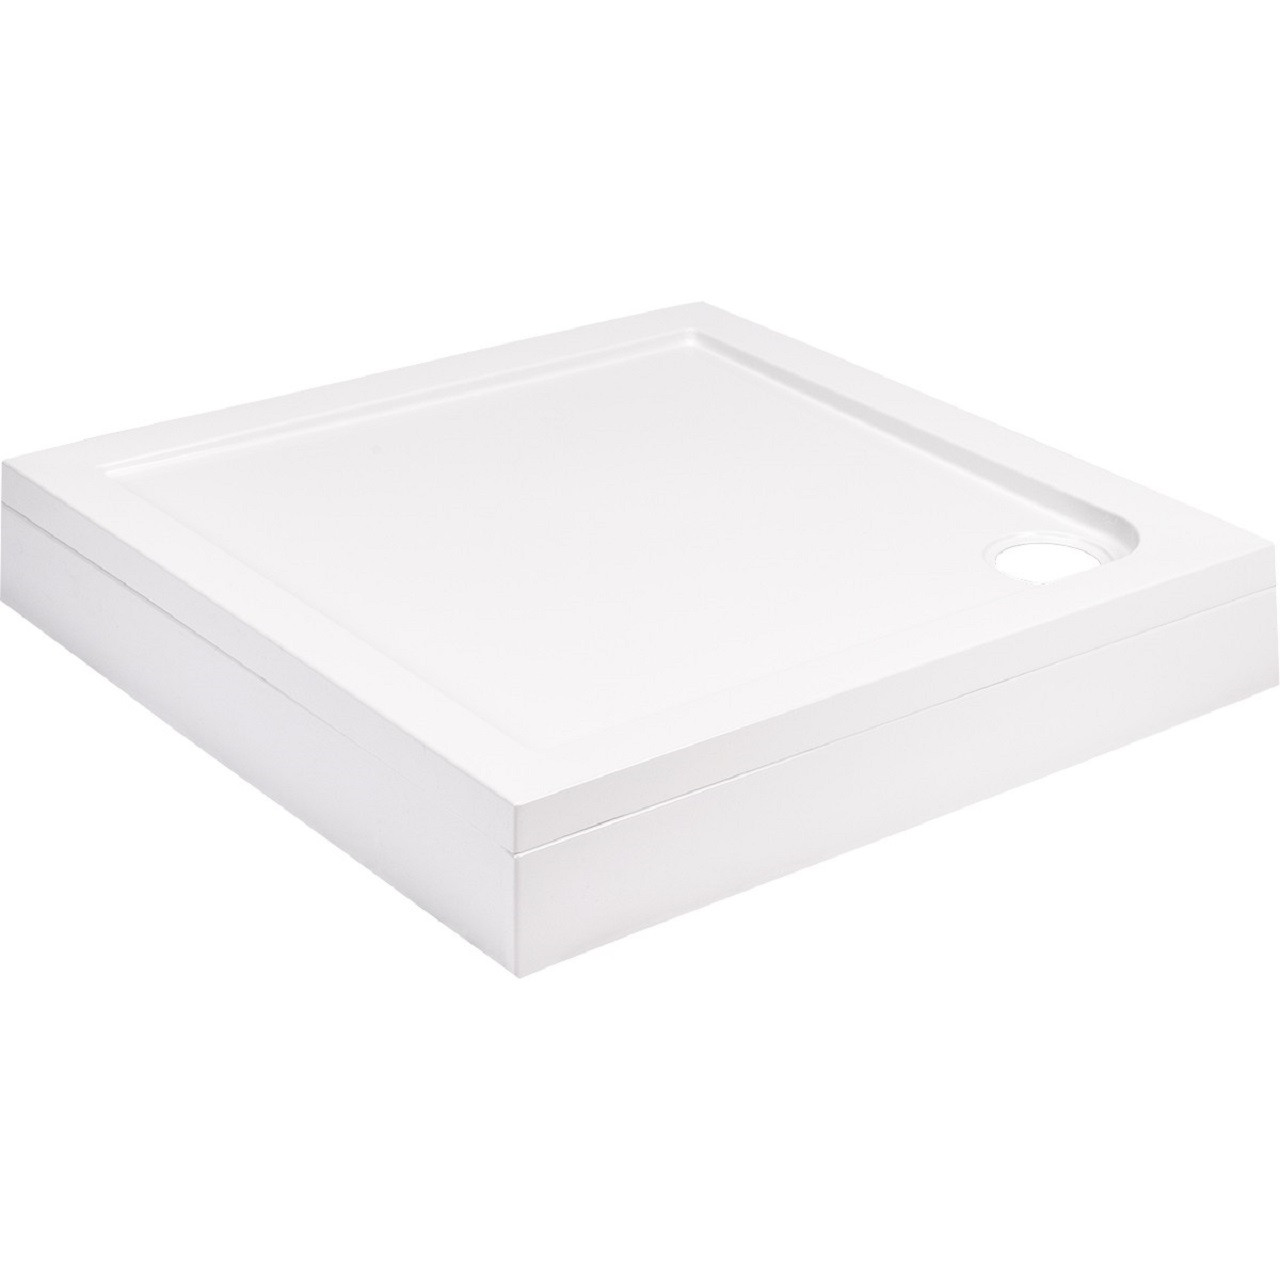 40mm Pearlstone 700 x 700 Square Shower Tray & Plinth